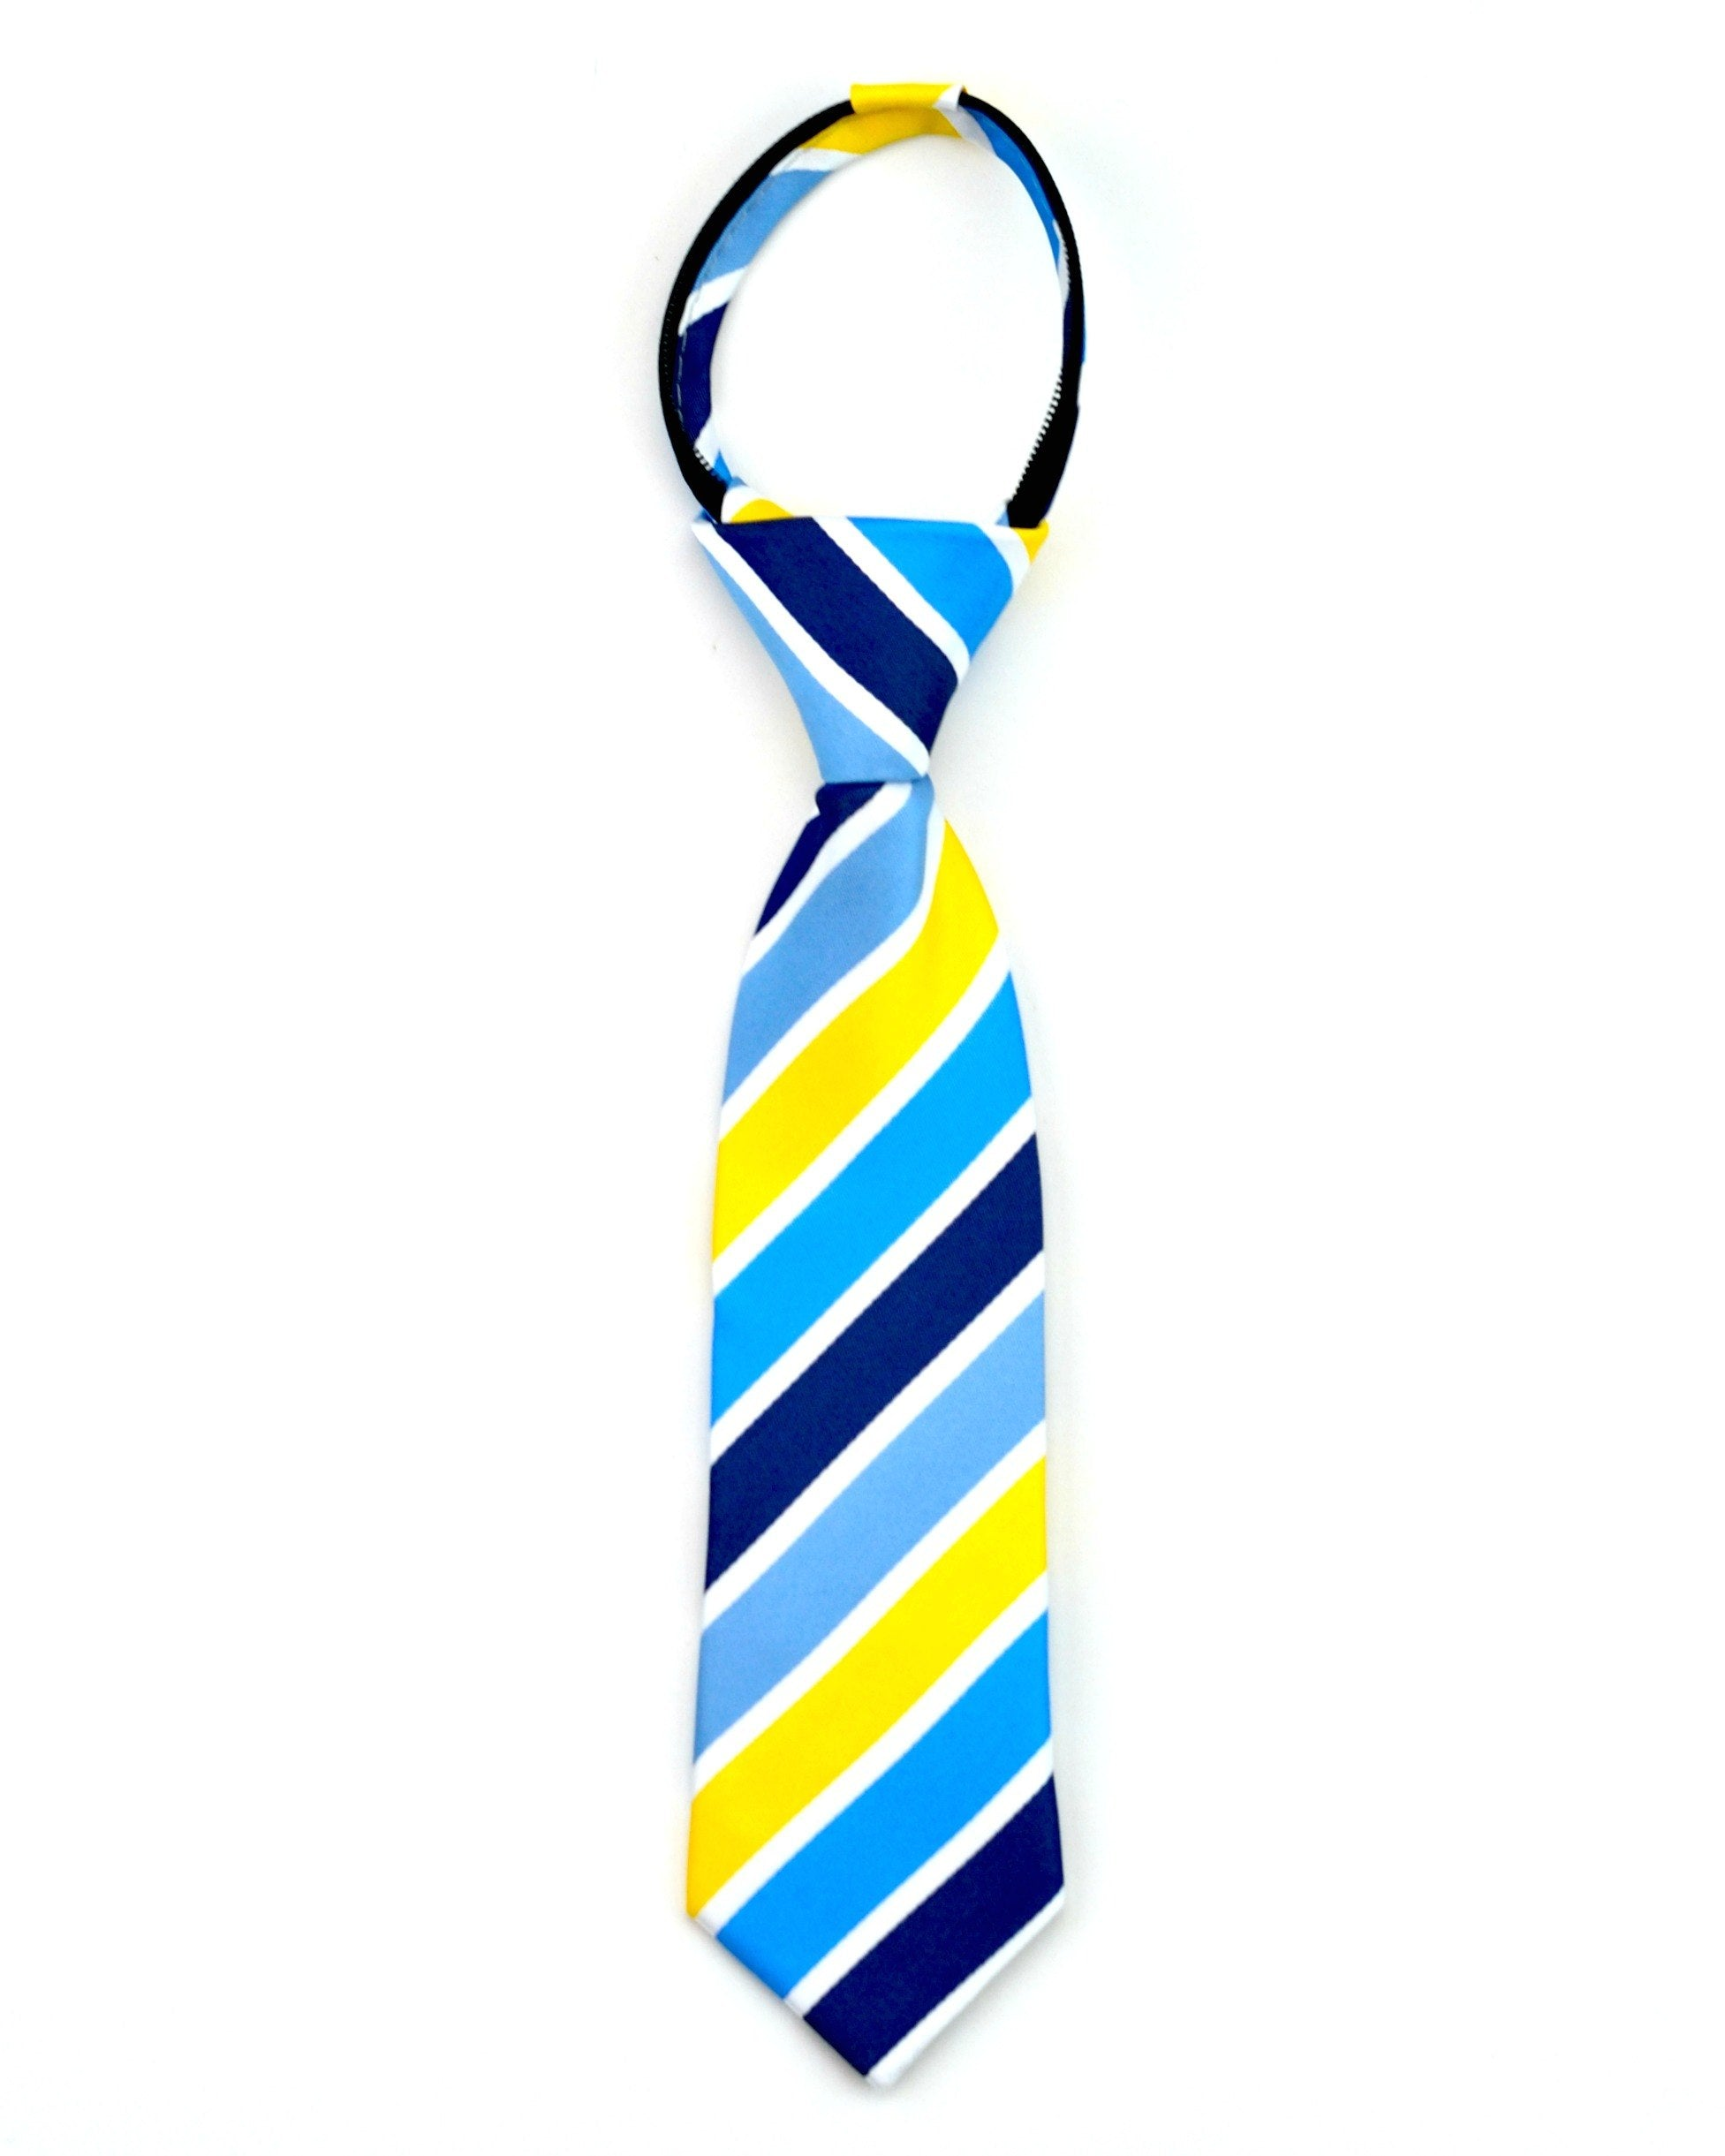 sunshine-and-blue-stripe-zipper-tie.jpg